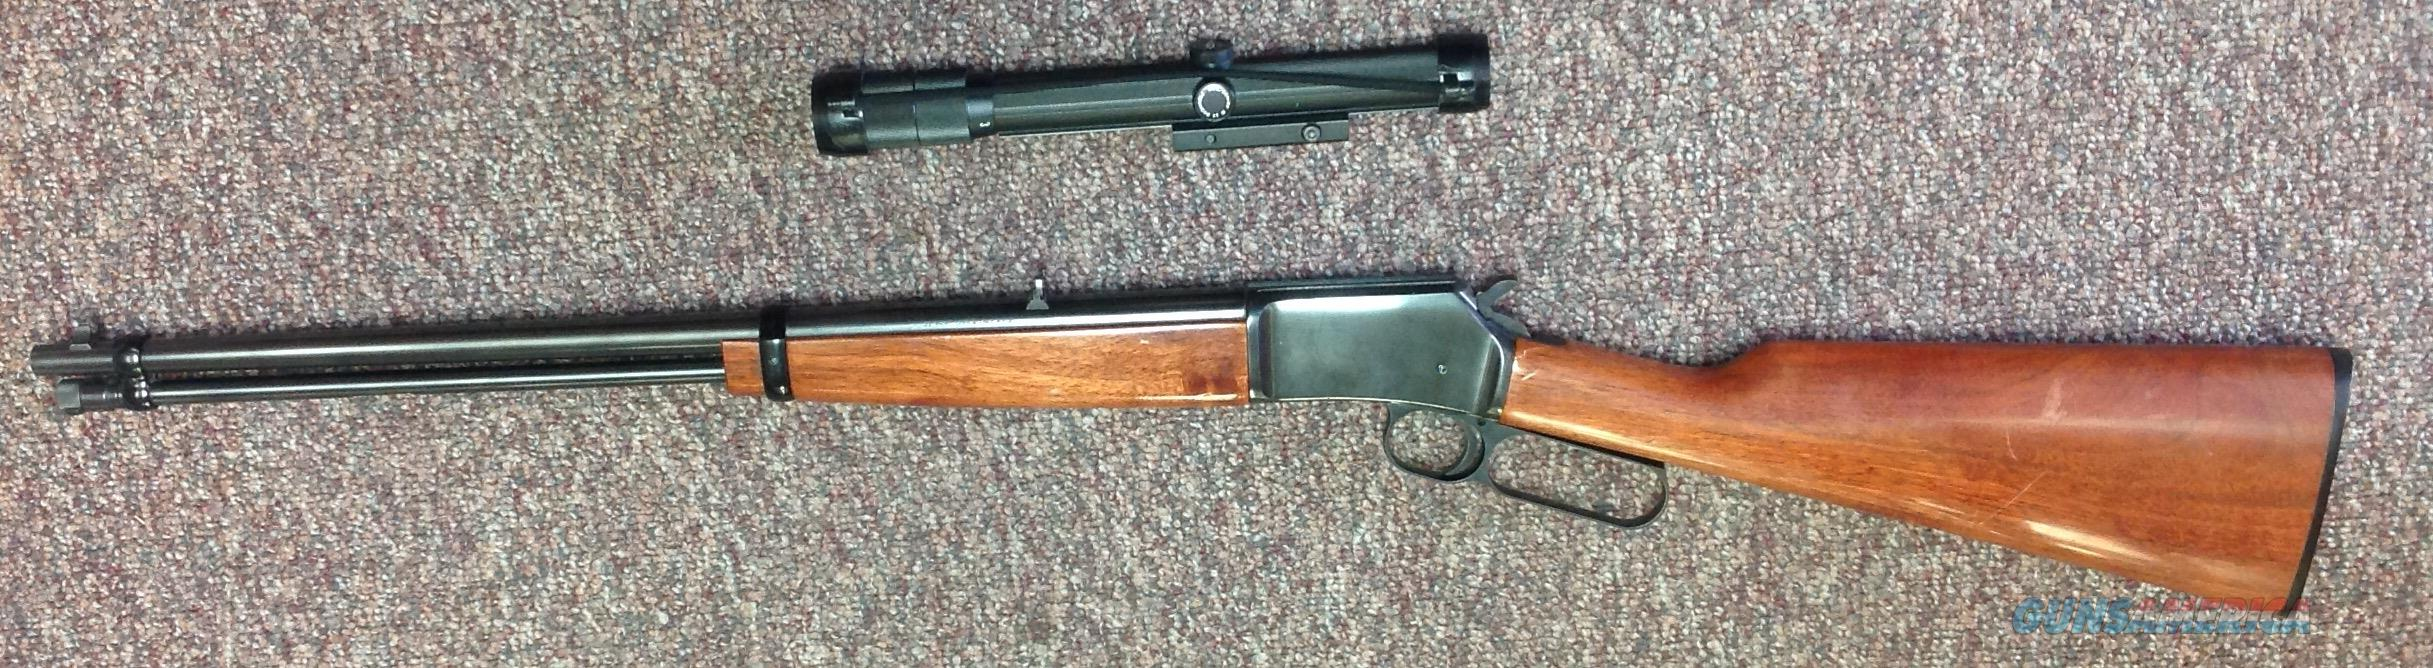 "Browning BLR-22, 20"" BBL with 3-8x BUSHNELL CHIEF SCOPE-NICE! - .22 LR  Guns > Rifles > Browning Rifles > Lever Action"